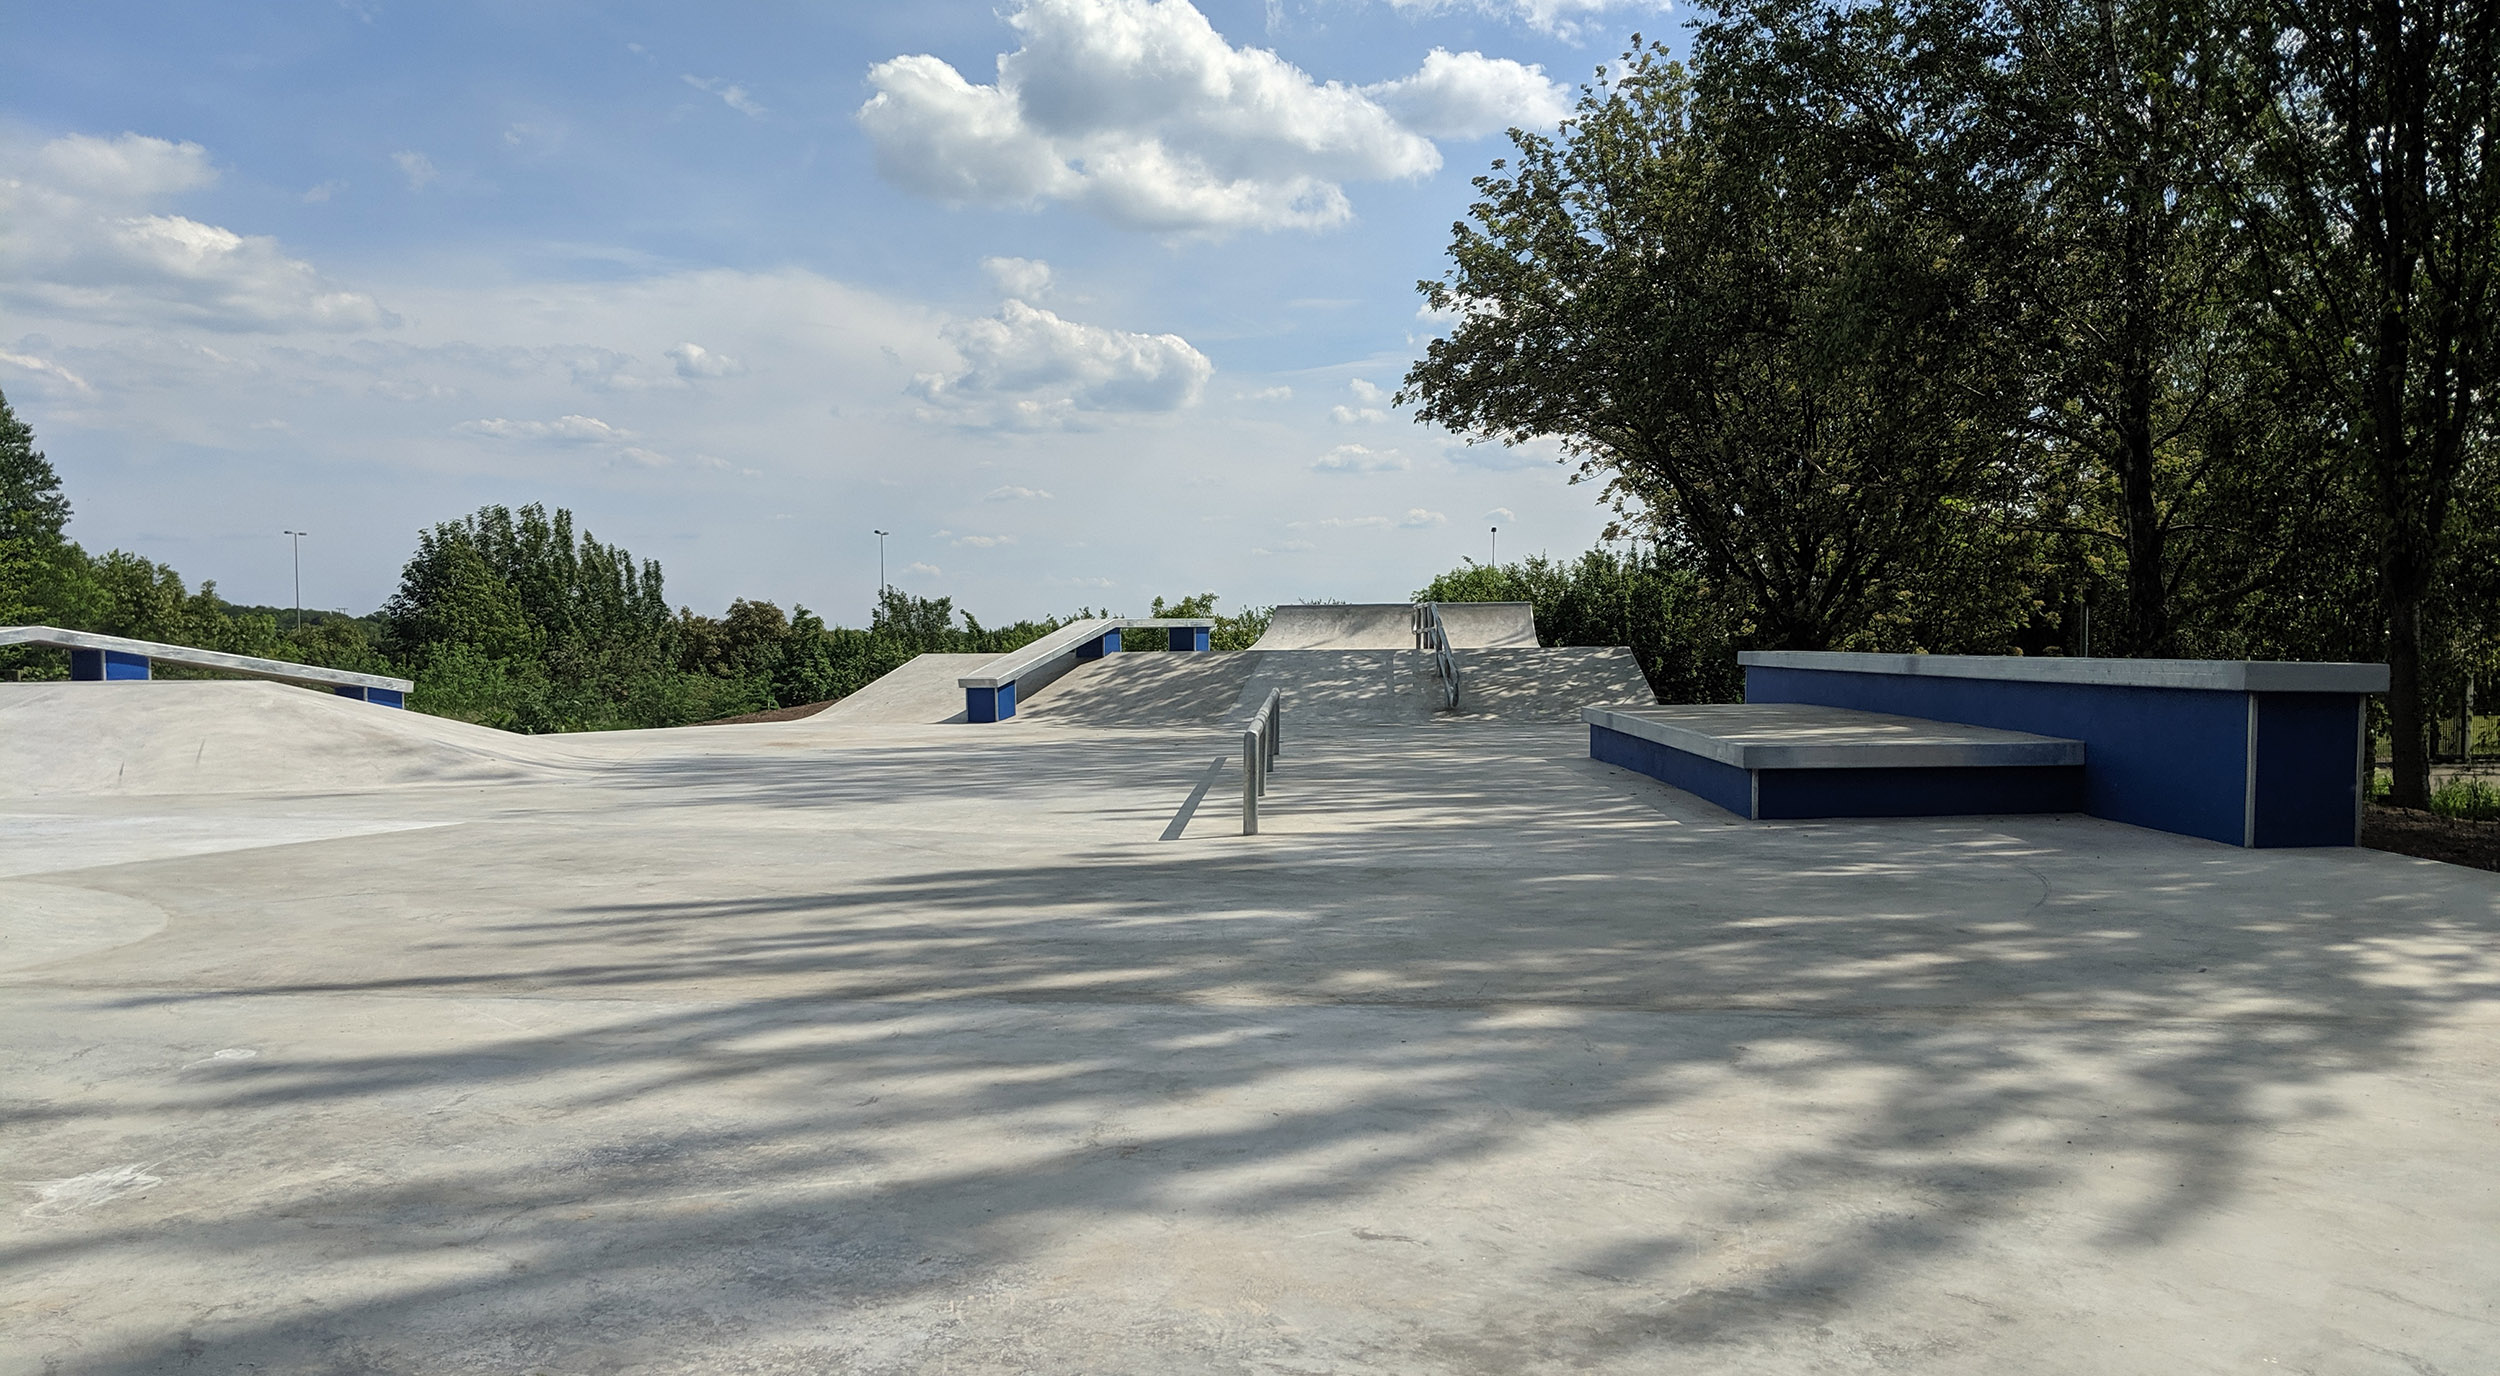 High Wycombe Skatepark